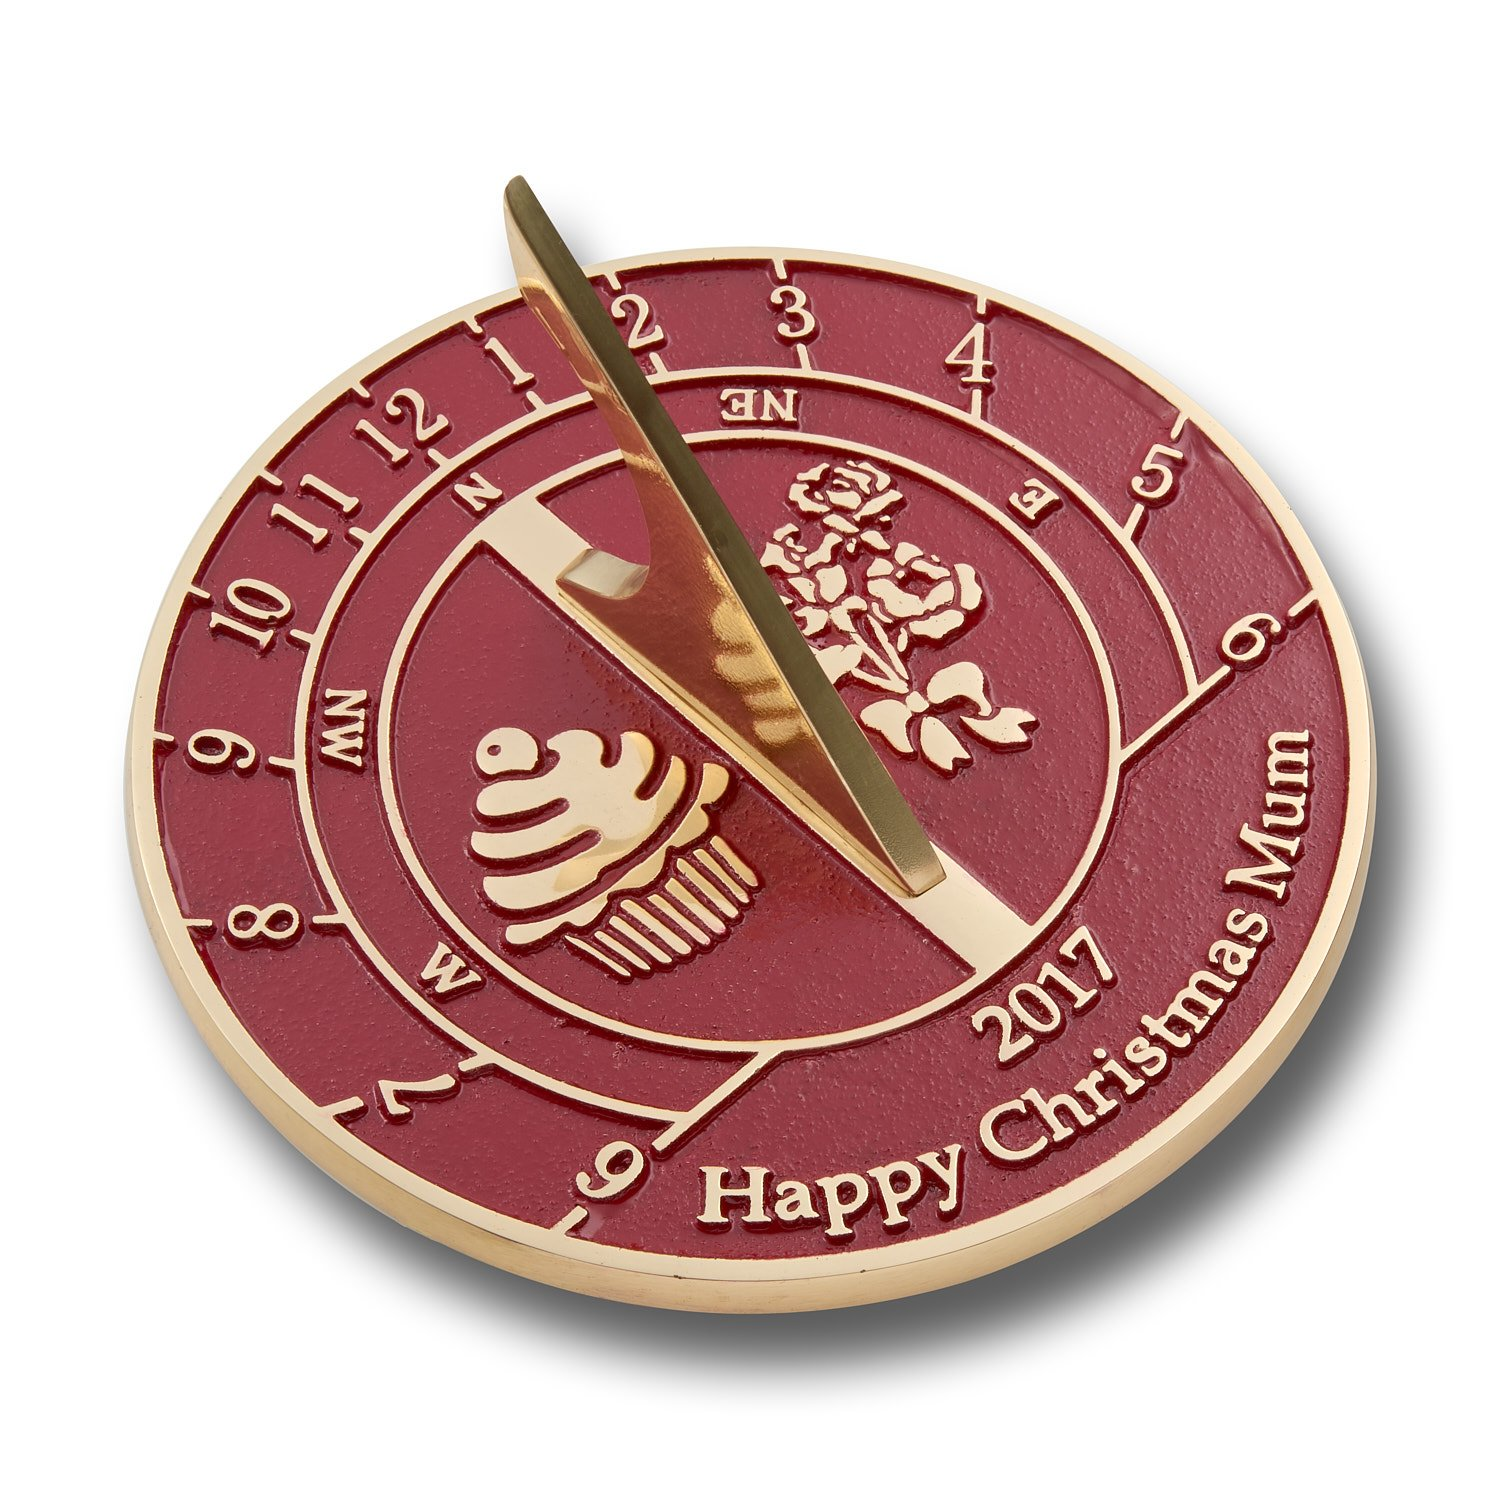 Special Christmas Gift For Mum. This Unique Sundial Would Make A Great Gift For Any Special Women In Your Life. Handmade By The Metal Foundry UK